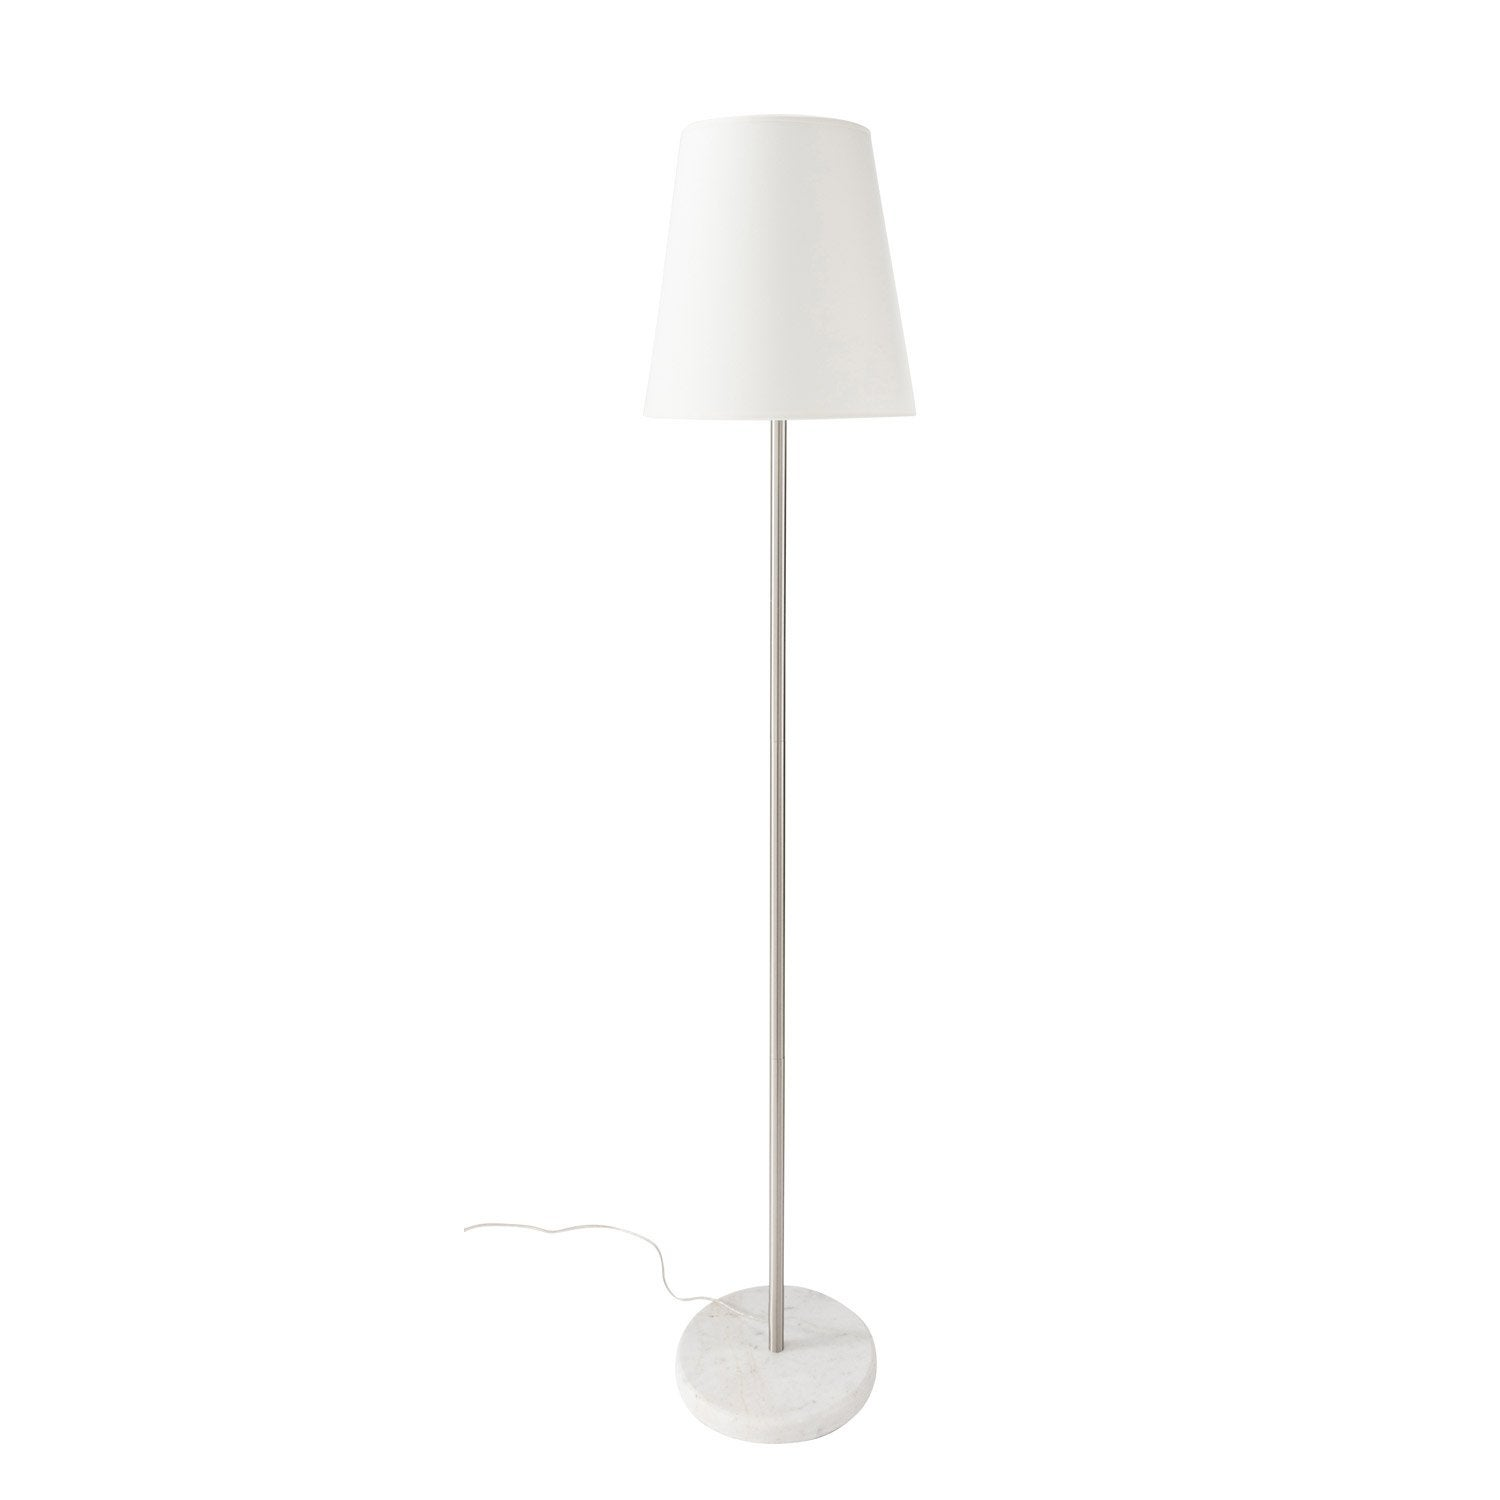 lampadaire marbela inspire 150 cm blanc 60 w leroy merlin. Black Bedroom Furniture Sets. Home Design Ideas